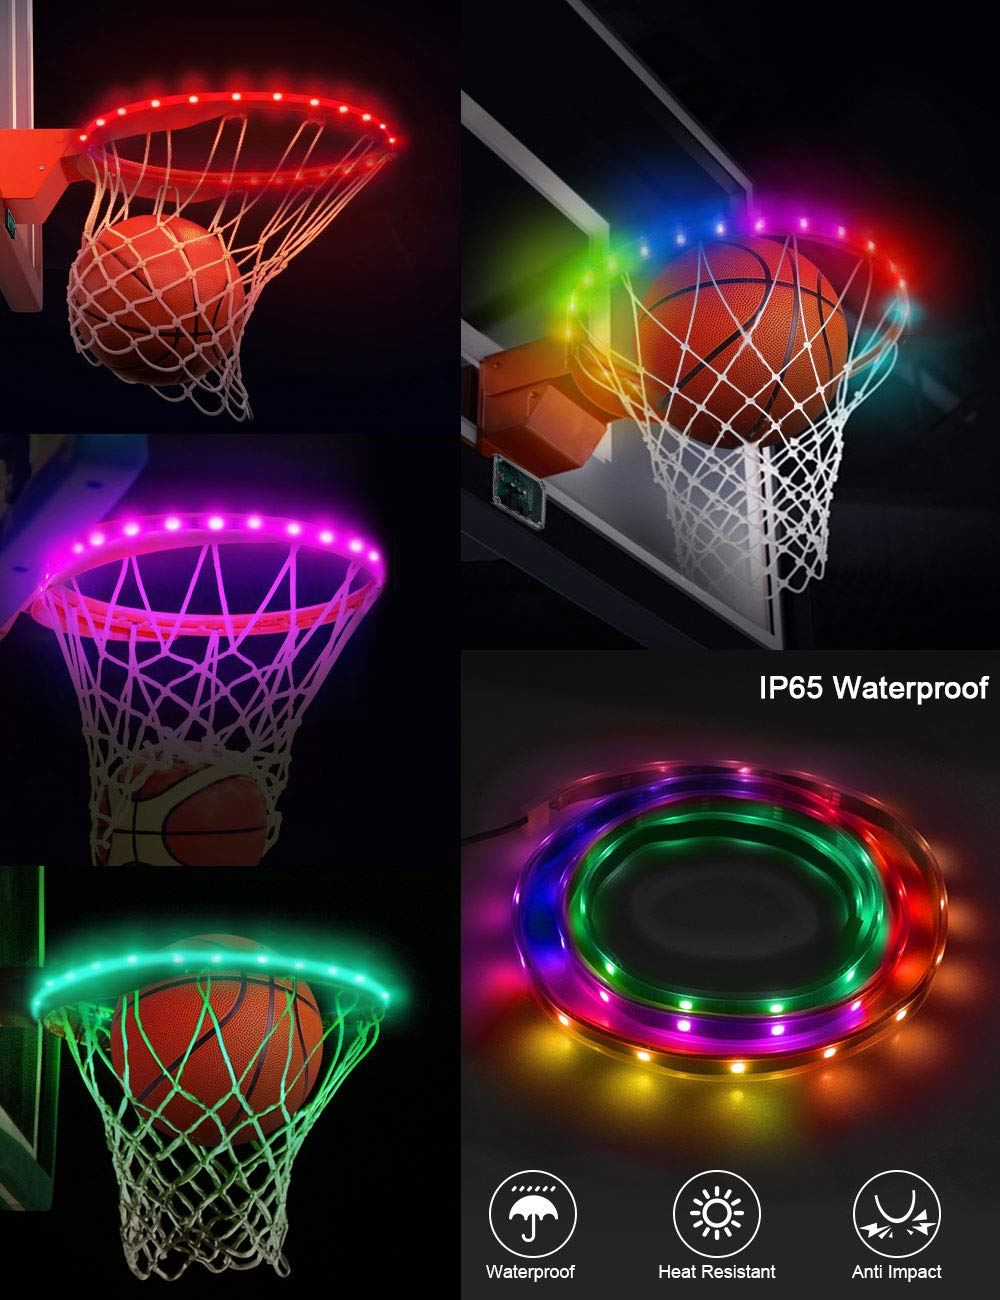 SeaELF LED Basketball Hoop Lights, Basketball Rim Lights Strip Waterproof Shooting Score Super Bright with 7 Light Modes Ideal for Kids, Adults, Parties and Training Playing at Night Outdoors